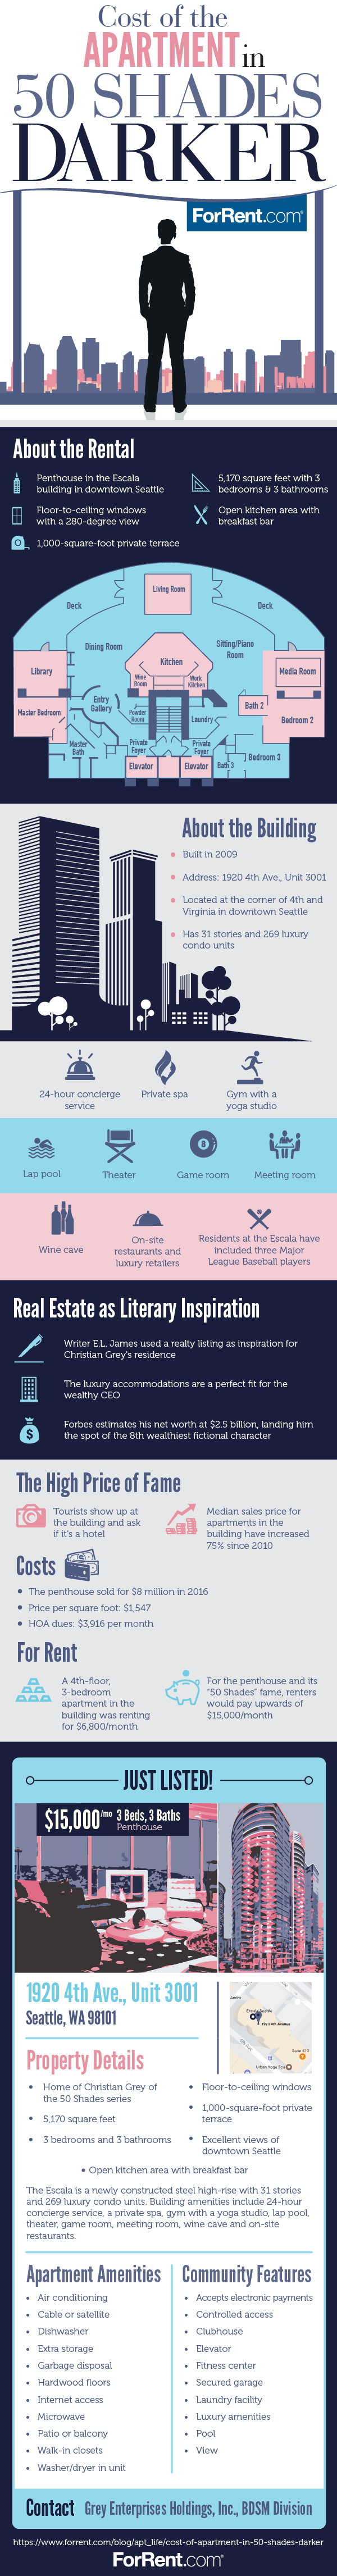 The Cost Of The Apartment In 50 Shades Darker Infographic